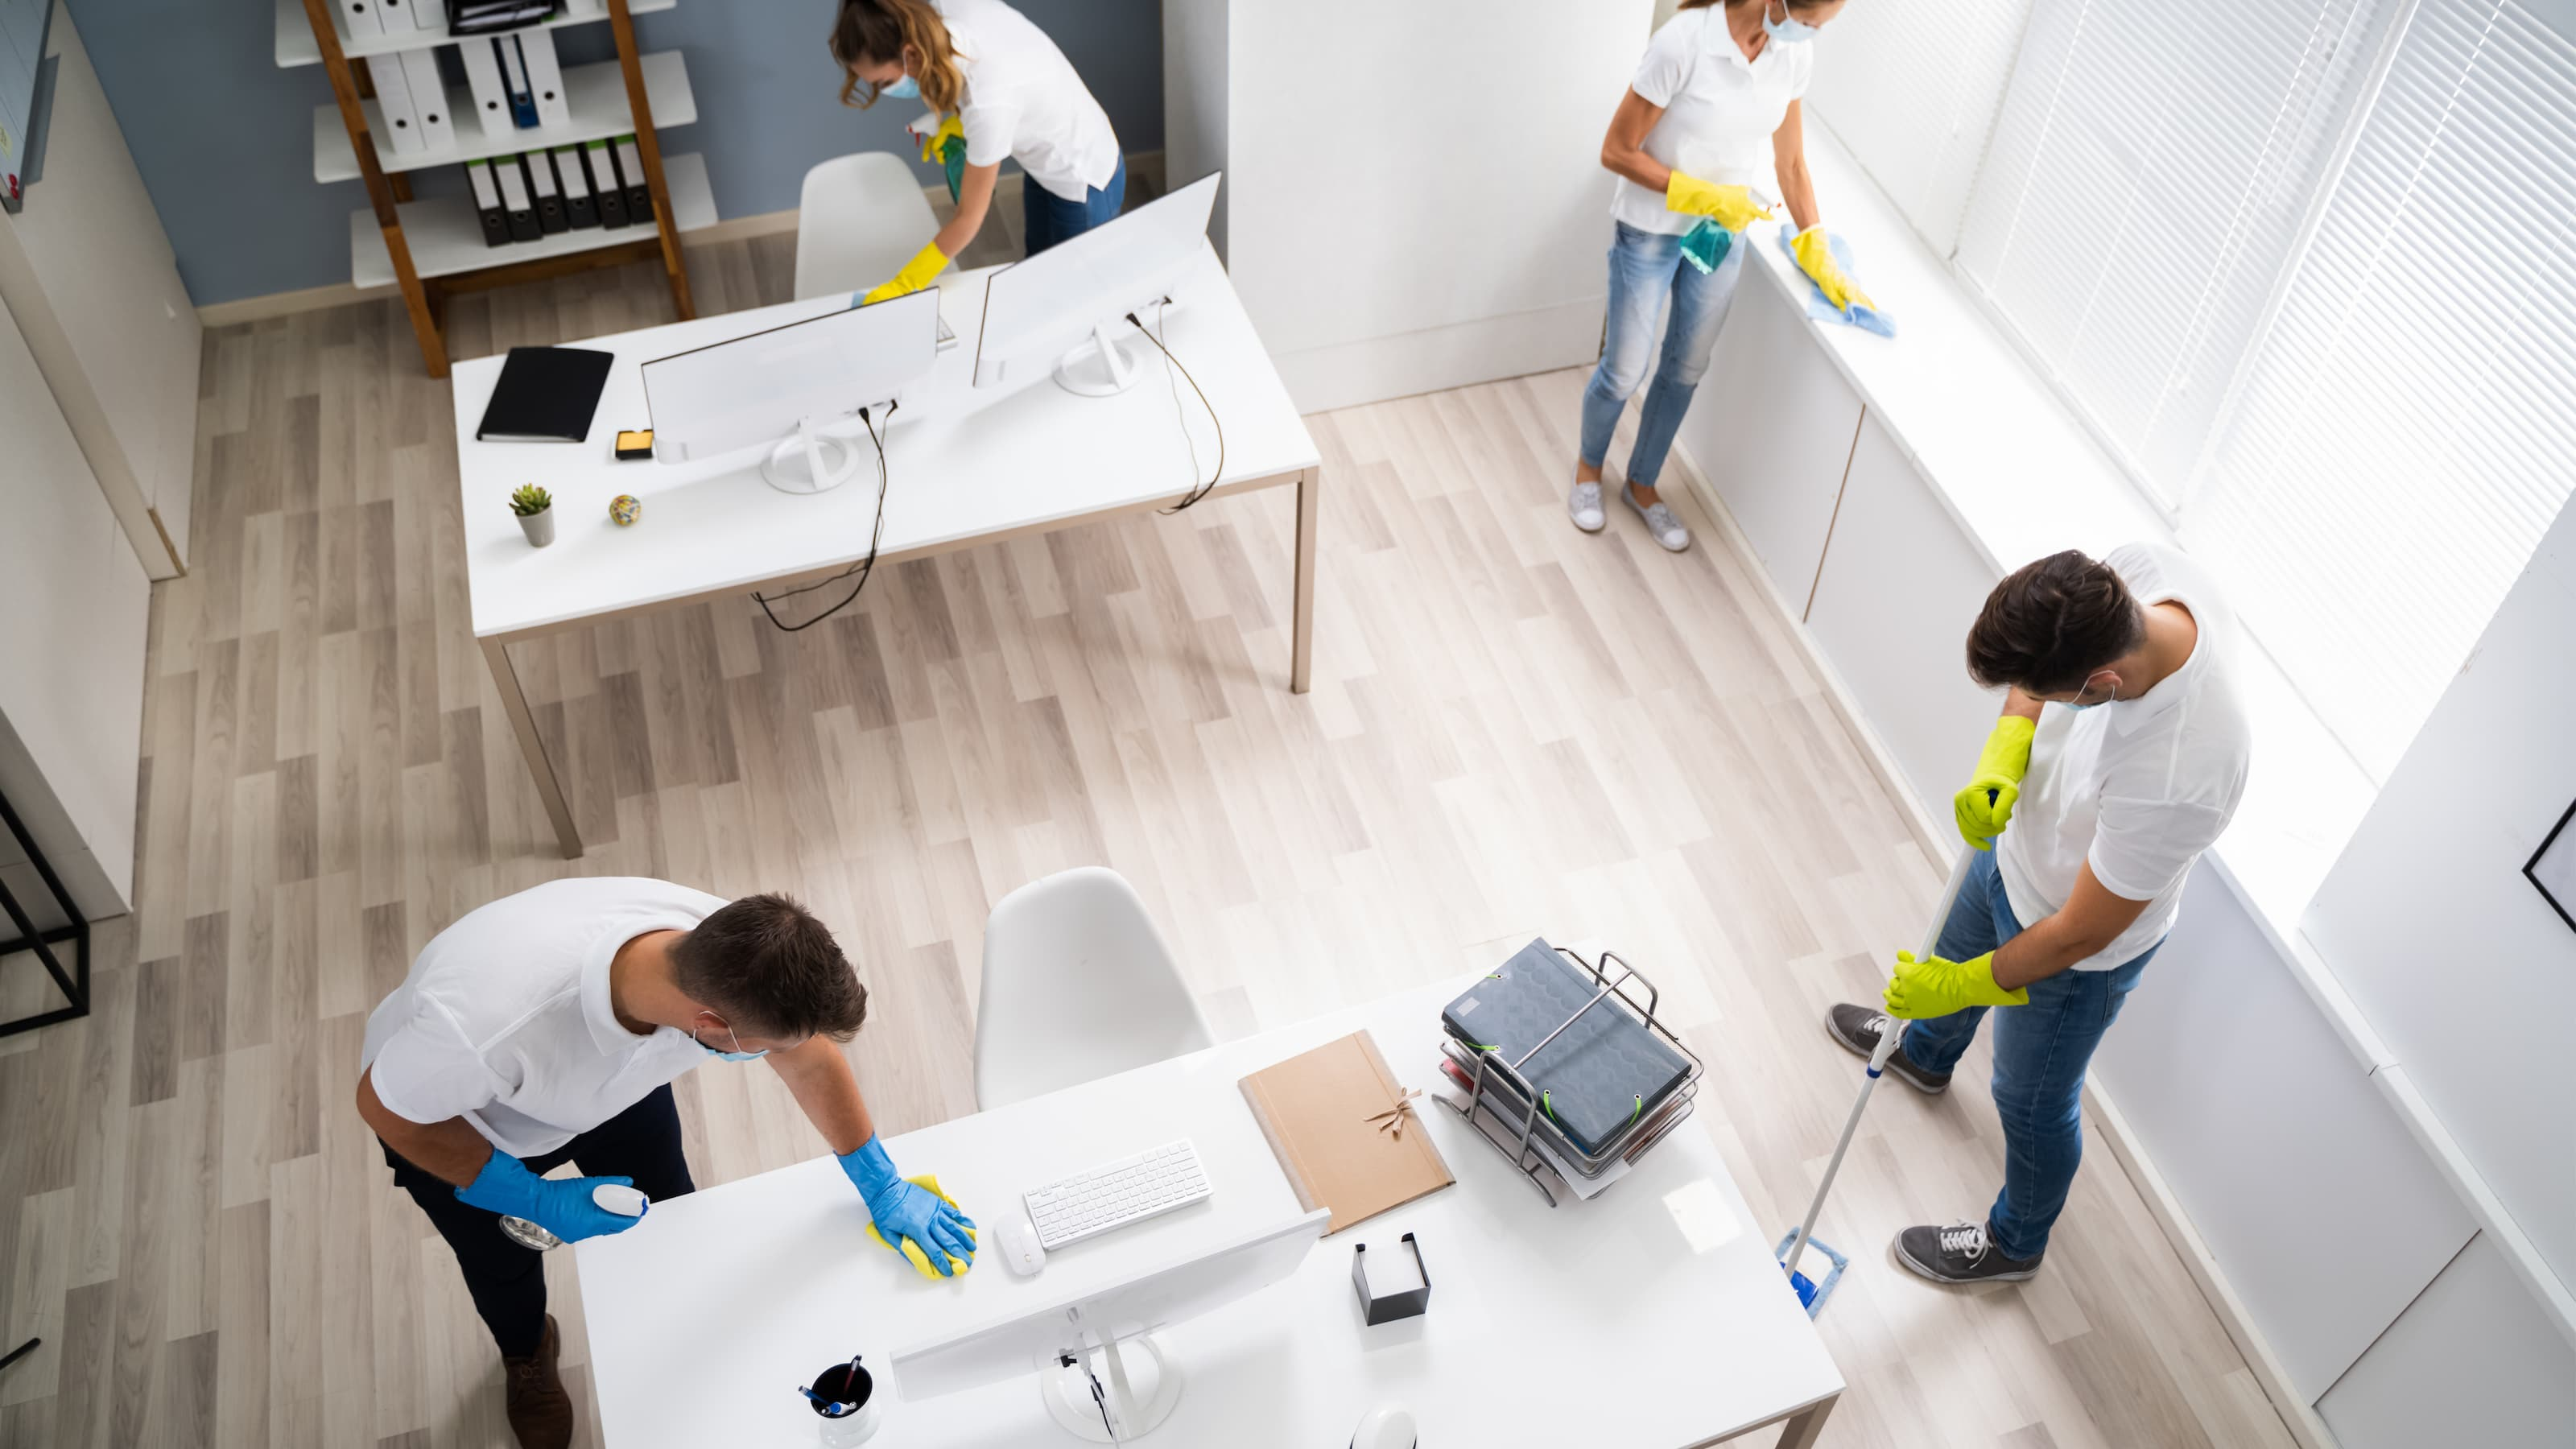 Hiring a cleaning company is not easy. You need the right team to effectively clean your office and ensure that there are no health hazards present for you or your staff.